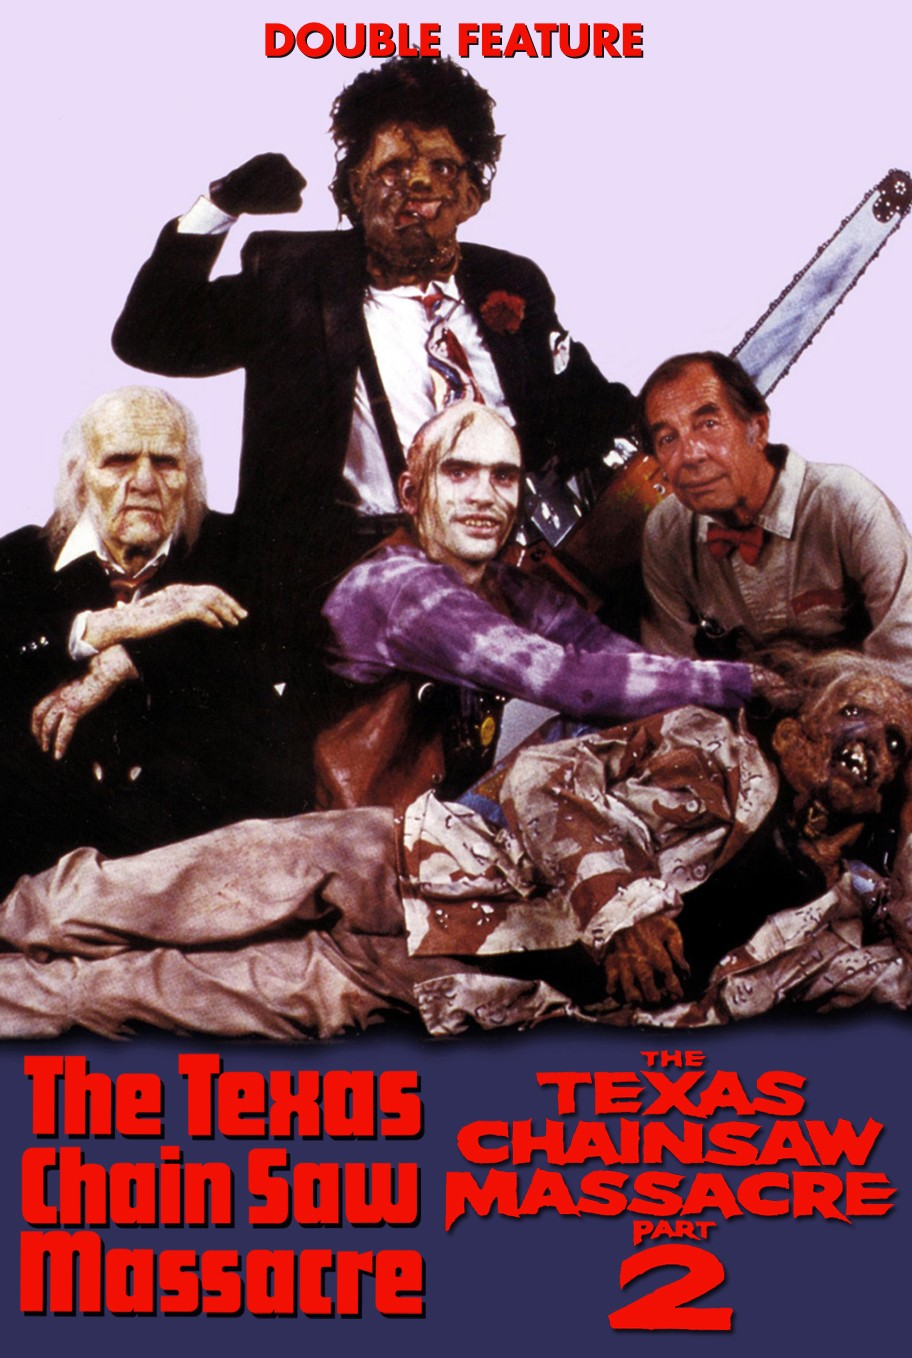 THE TEXAS CHAIN SAW MASSACRE + THE TEXAS CHAINSAW MASSACRE 2